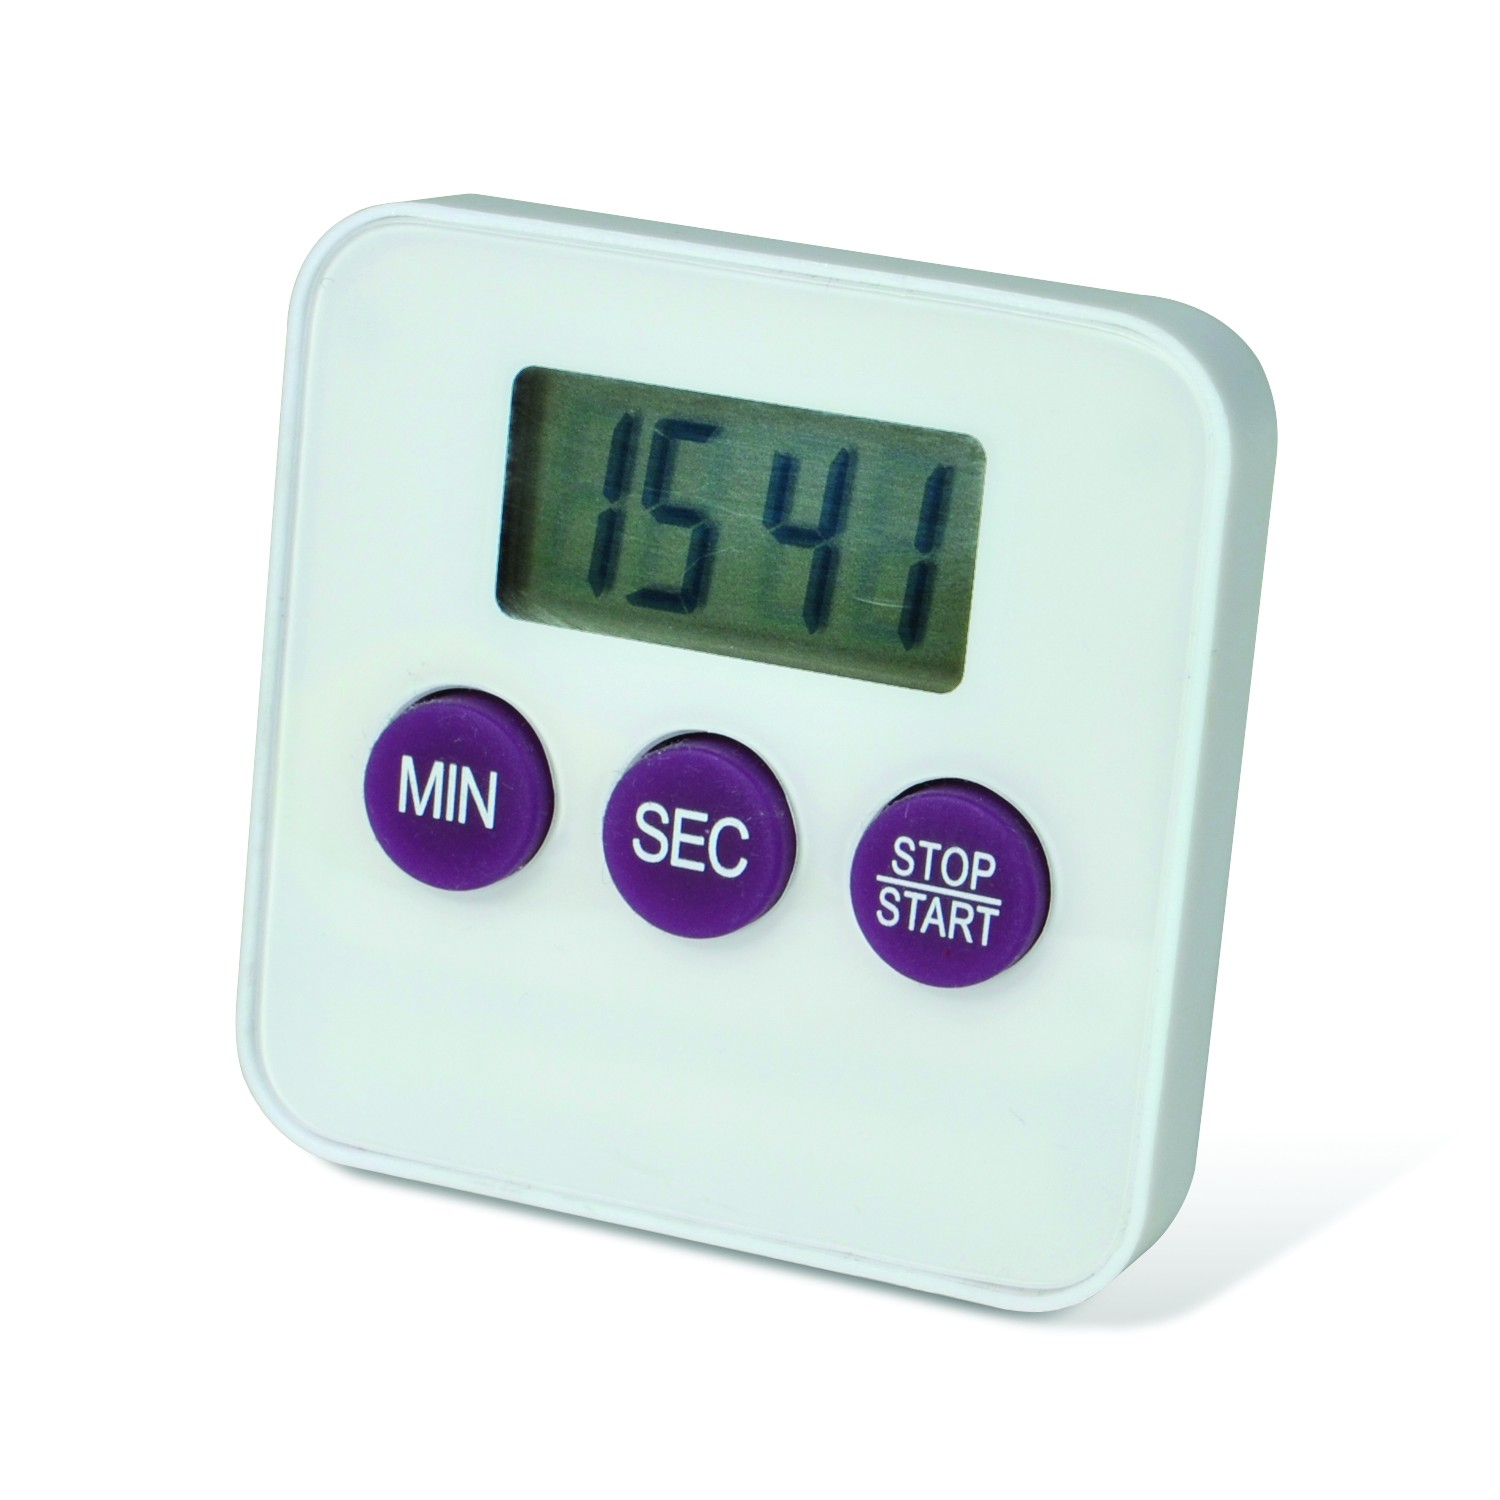 H-B DURAC Single Channel Electronic Timer with Certificate of Calibration